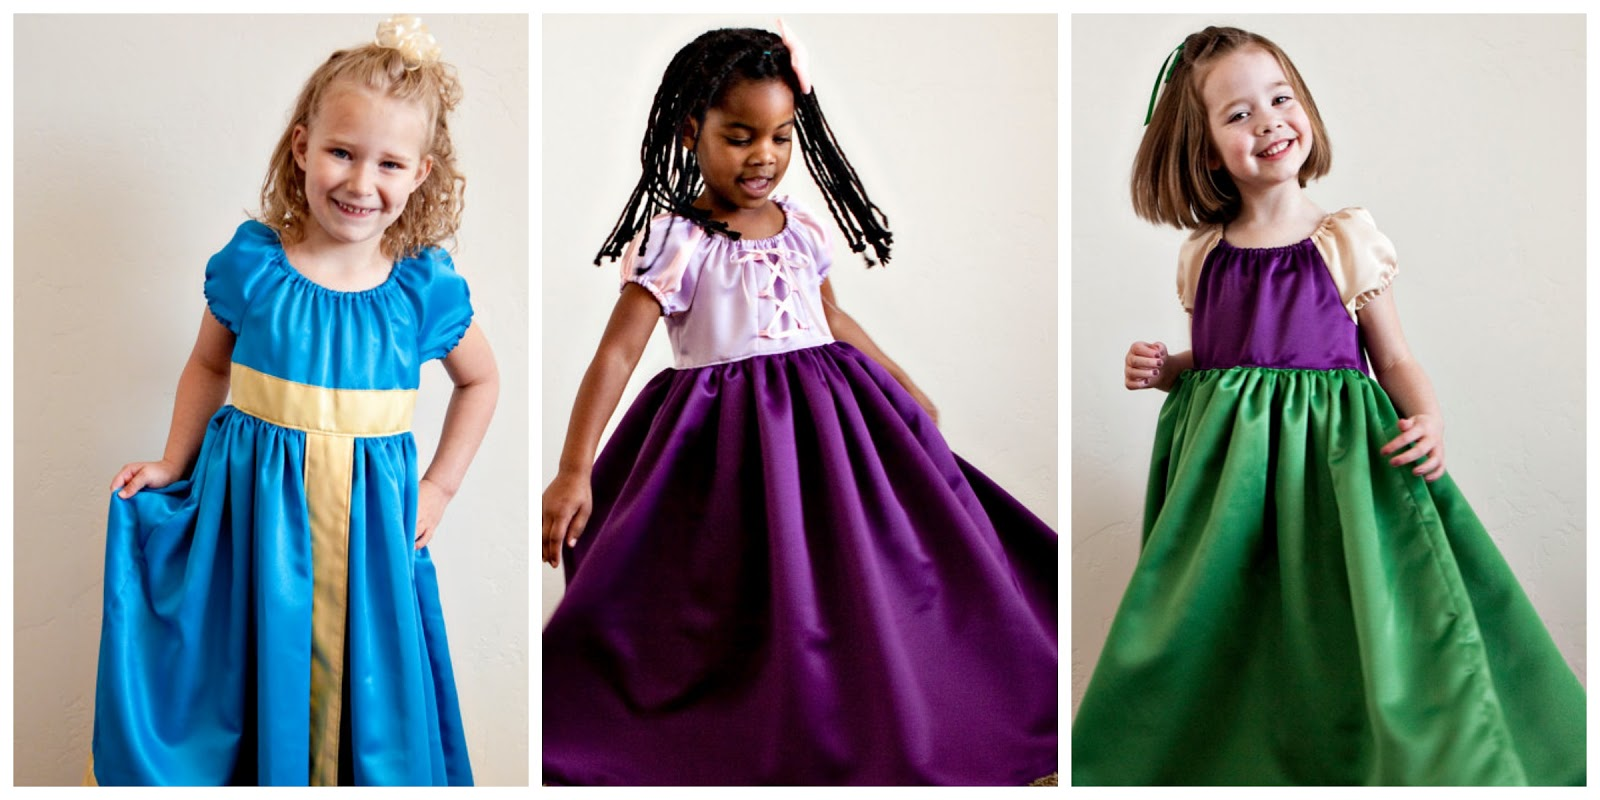 I Found The Wonderful A Princess Pea April Makes Dresses That Are Both Fabulous And Functional Dress For My Daughter S Sofia